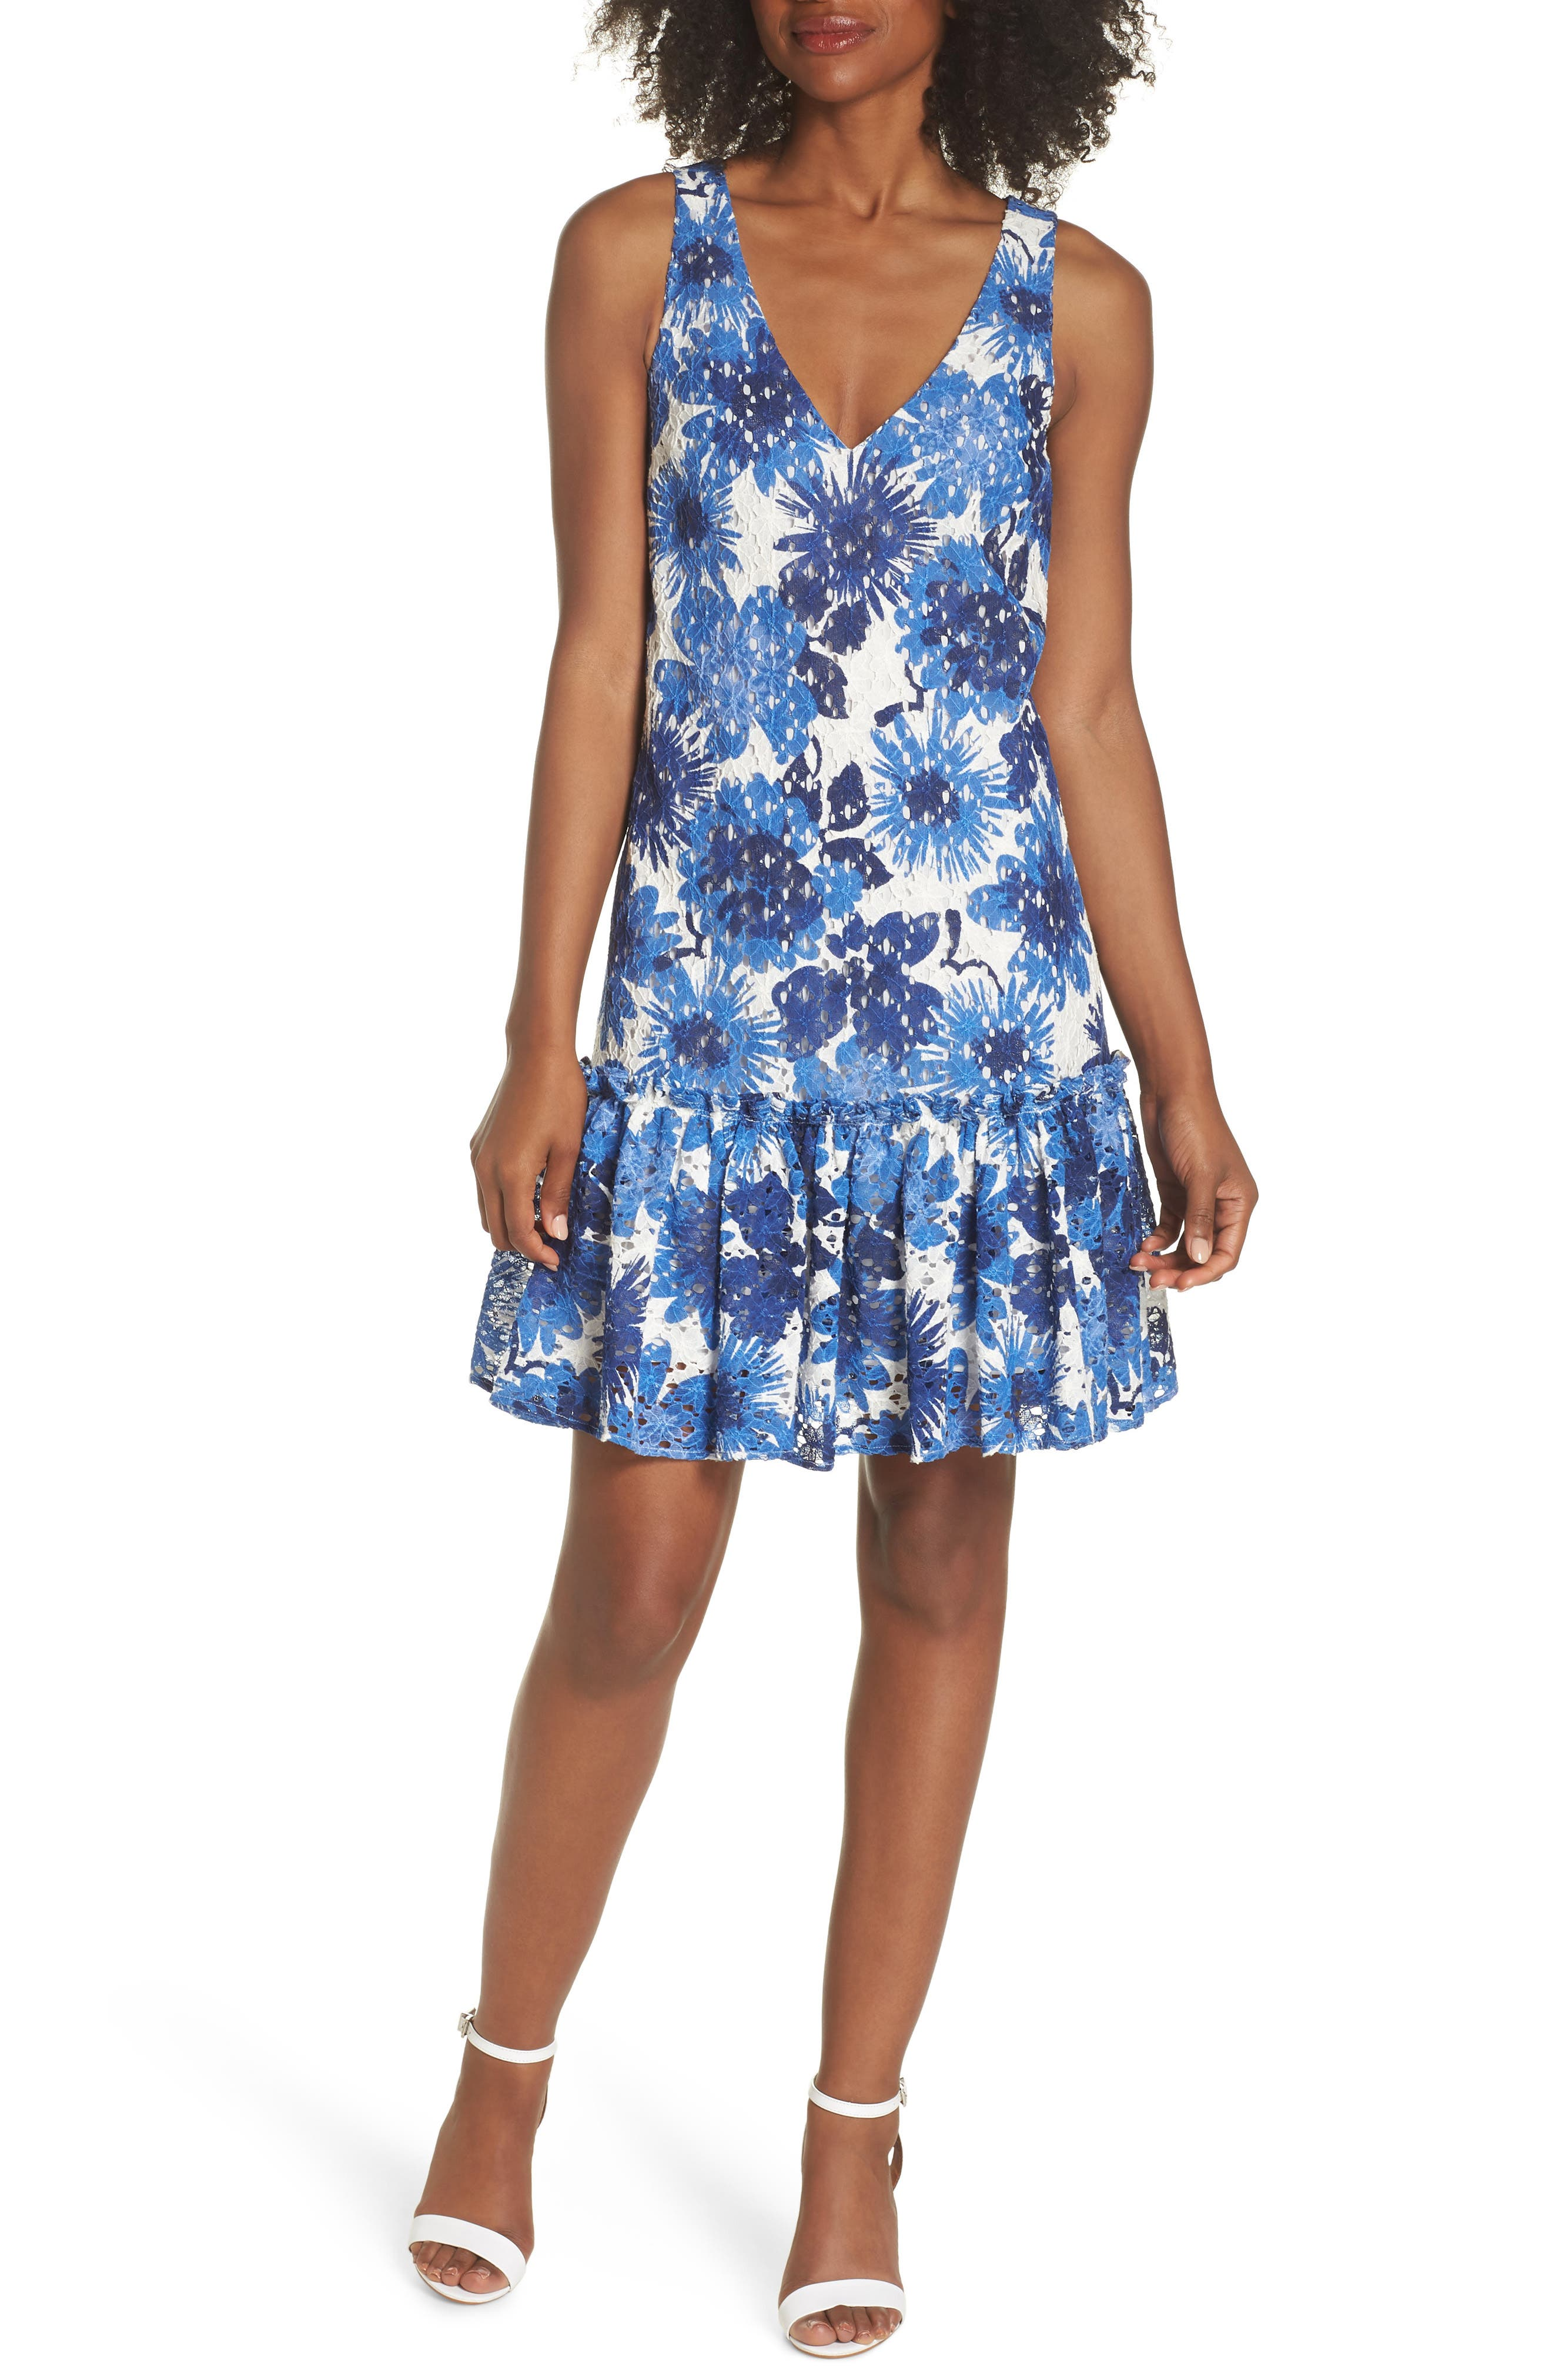 La Costa Print Ruffle Hem Lace Dress,                         Main,                         color, Multi